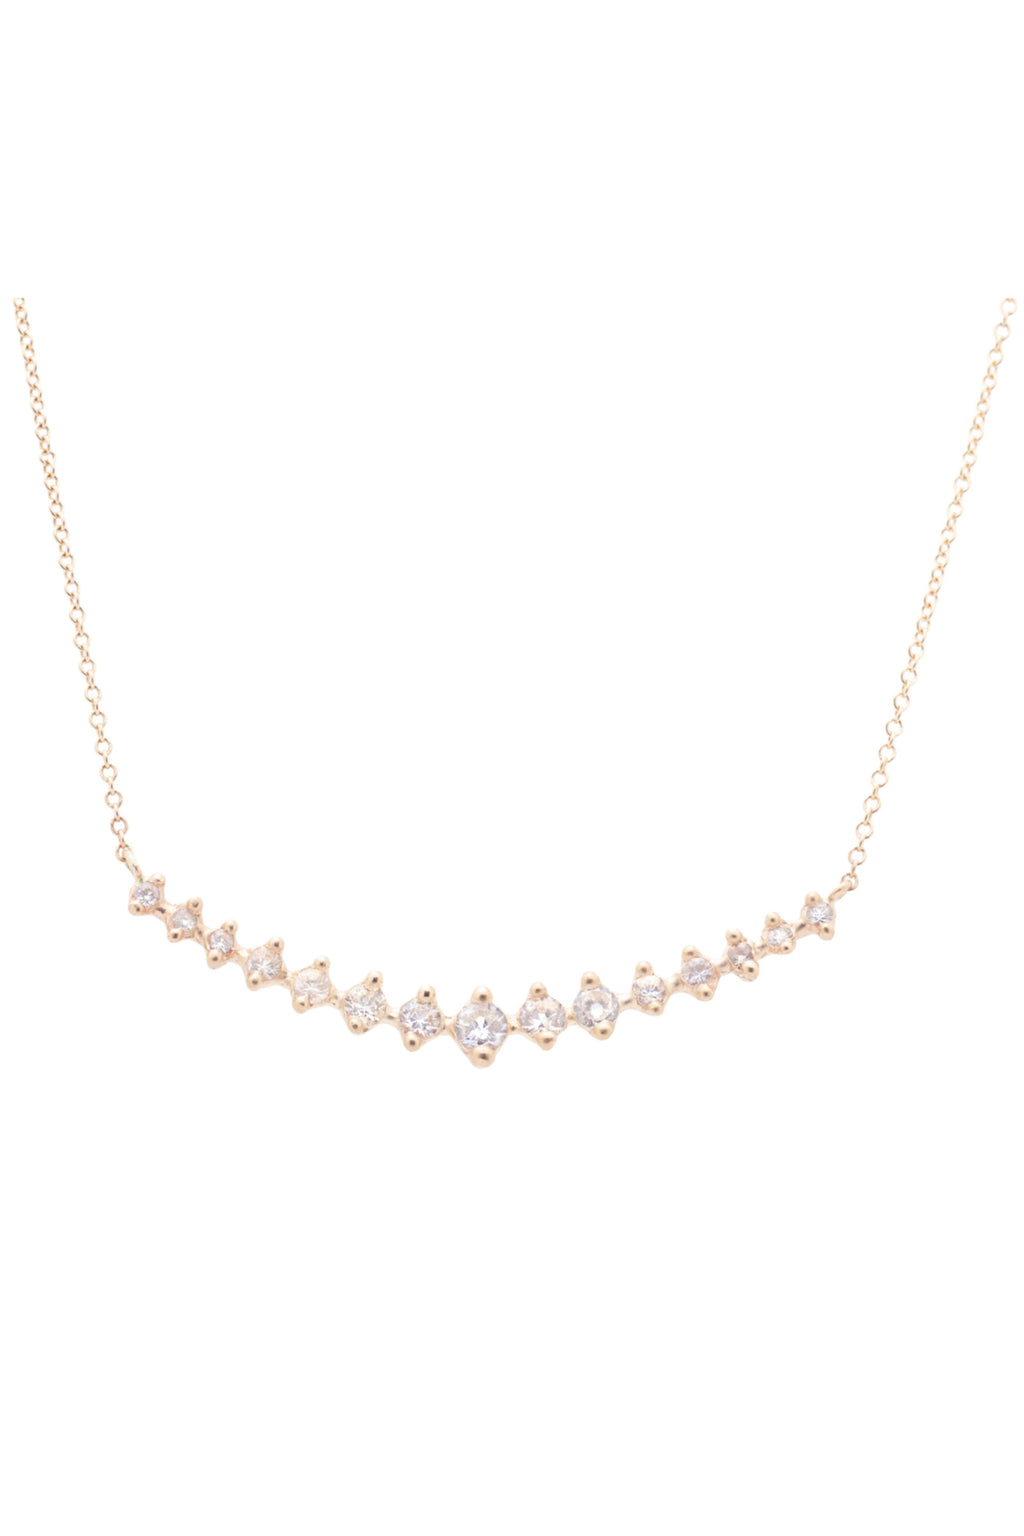 Valley Rose Meissa Necklace in White Sapphires